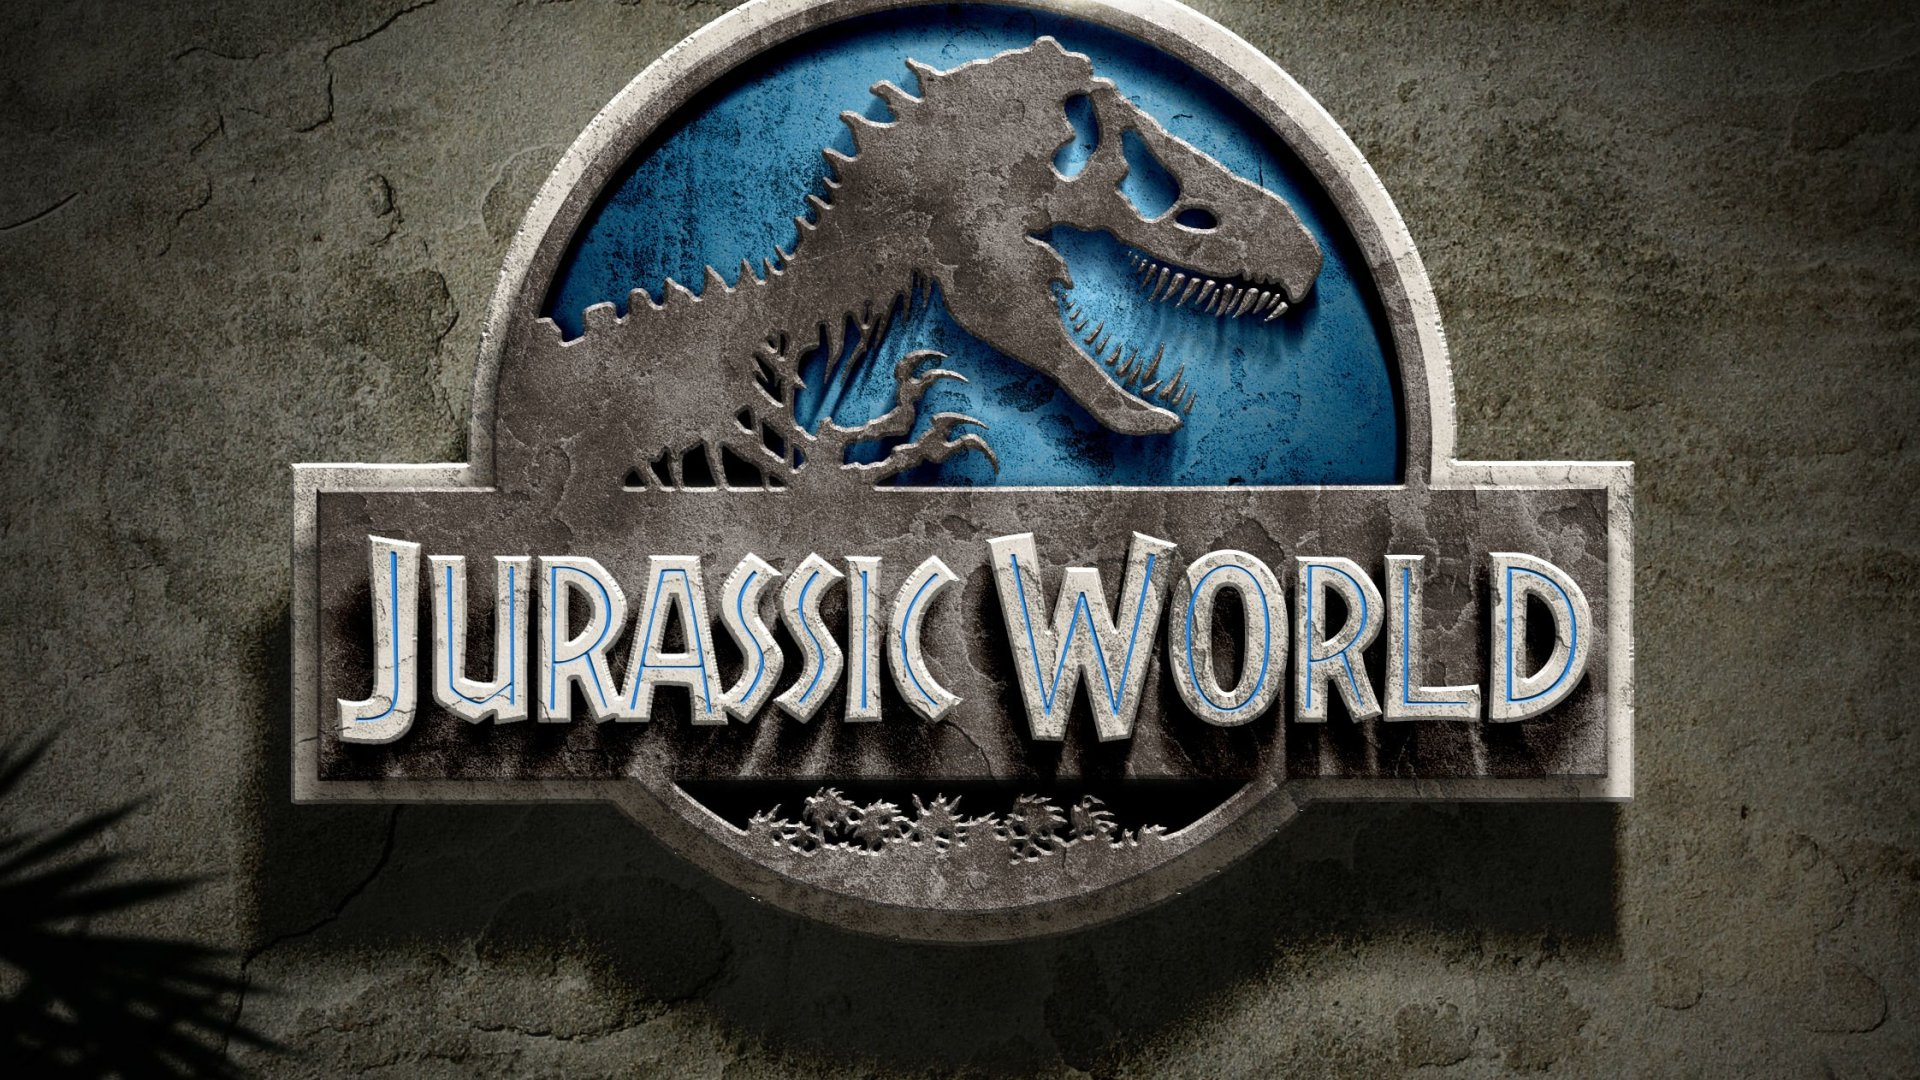 'Jurassic World' action-packed film